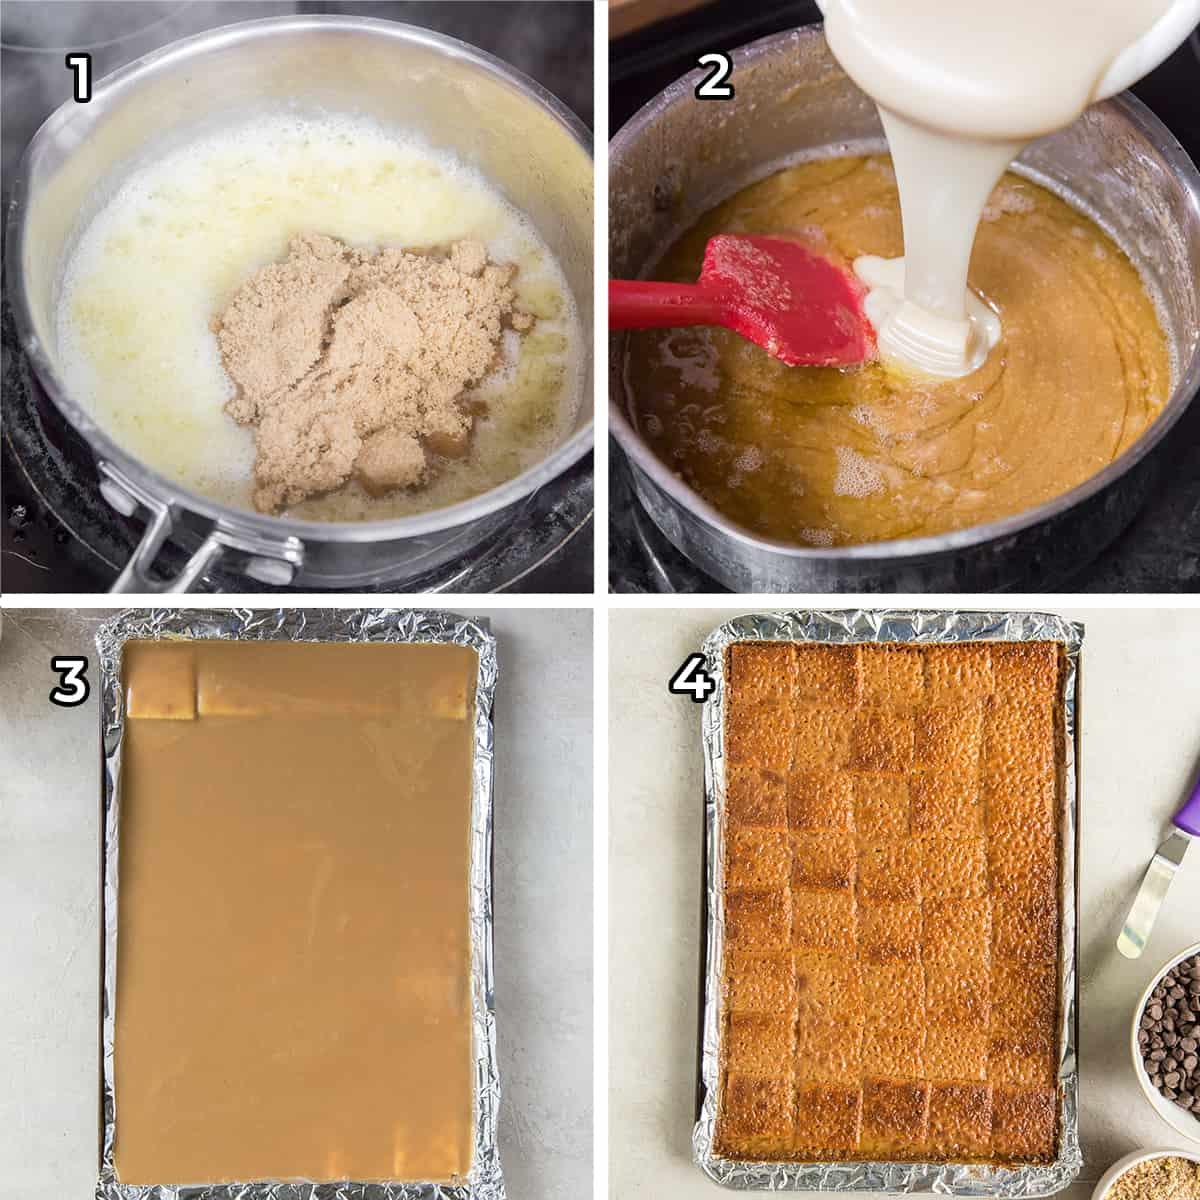 A toffee mixture is combined in a saucepan and poured over saltines.